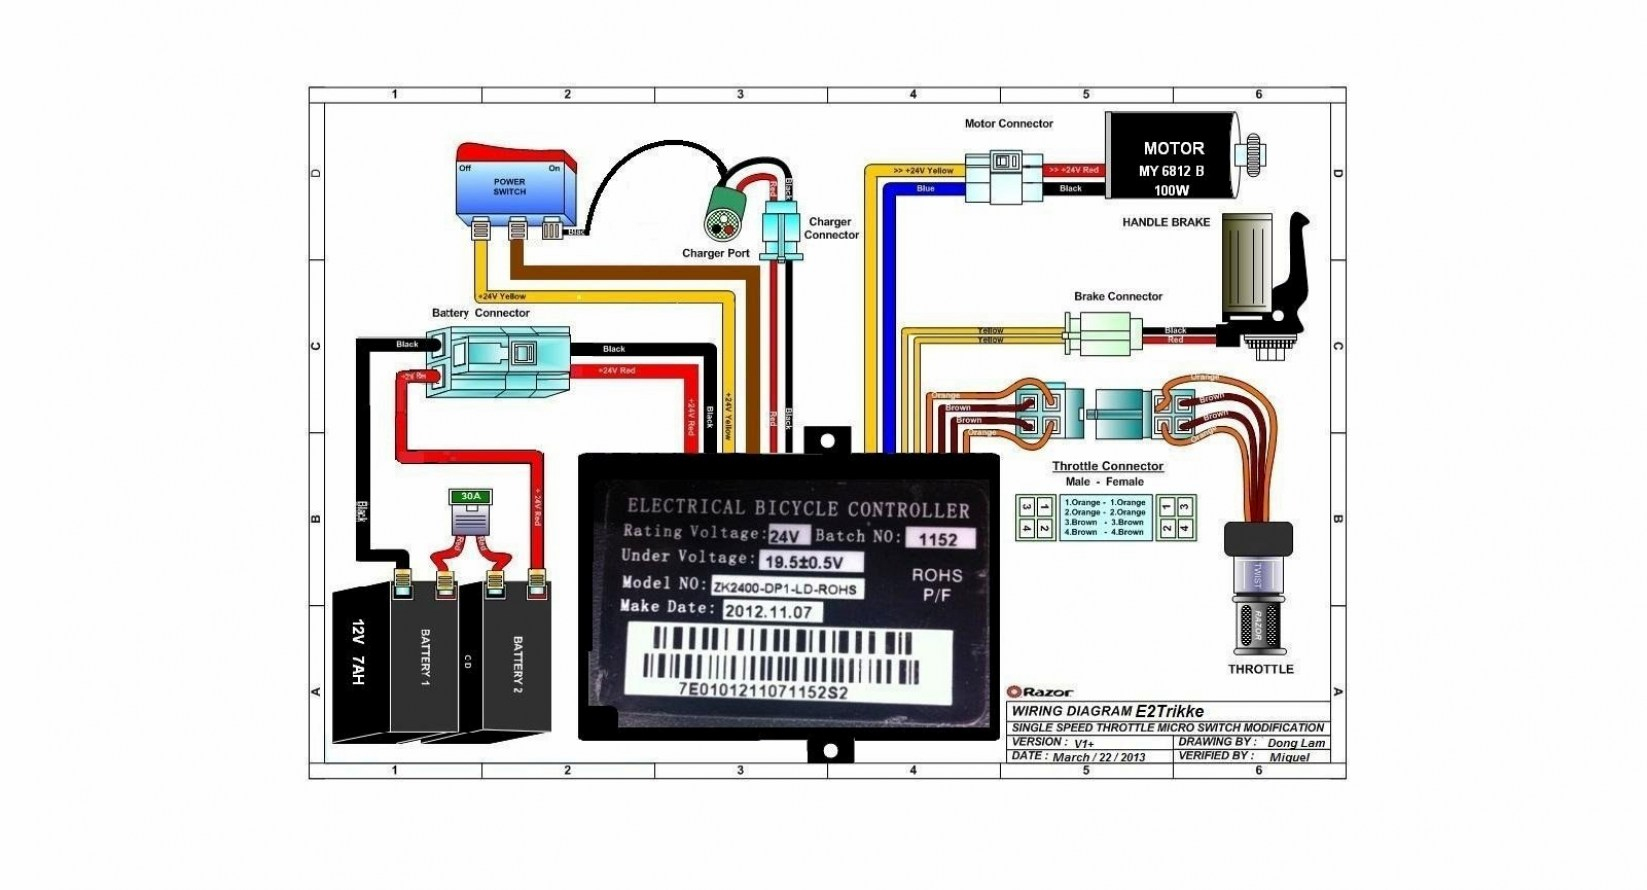 Razor E300 Wiring Diagram - Wiring Diagram And Schematics - Razor E300 Wiring Diagram